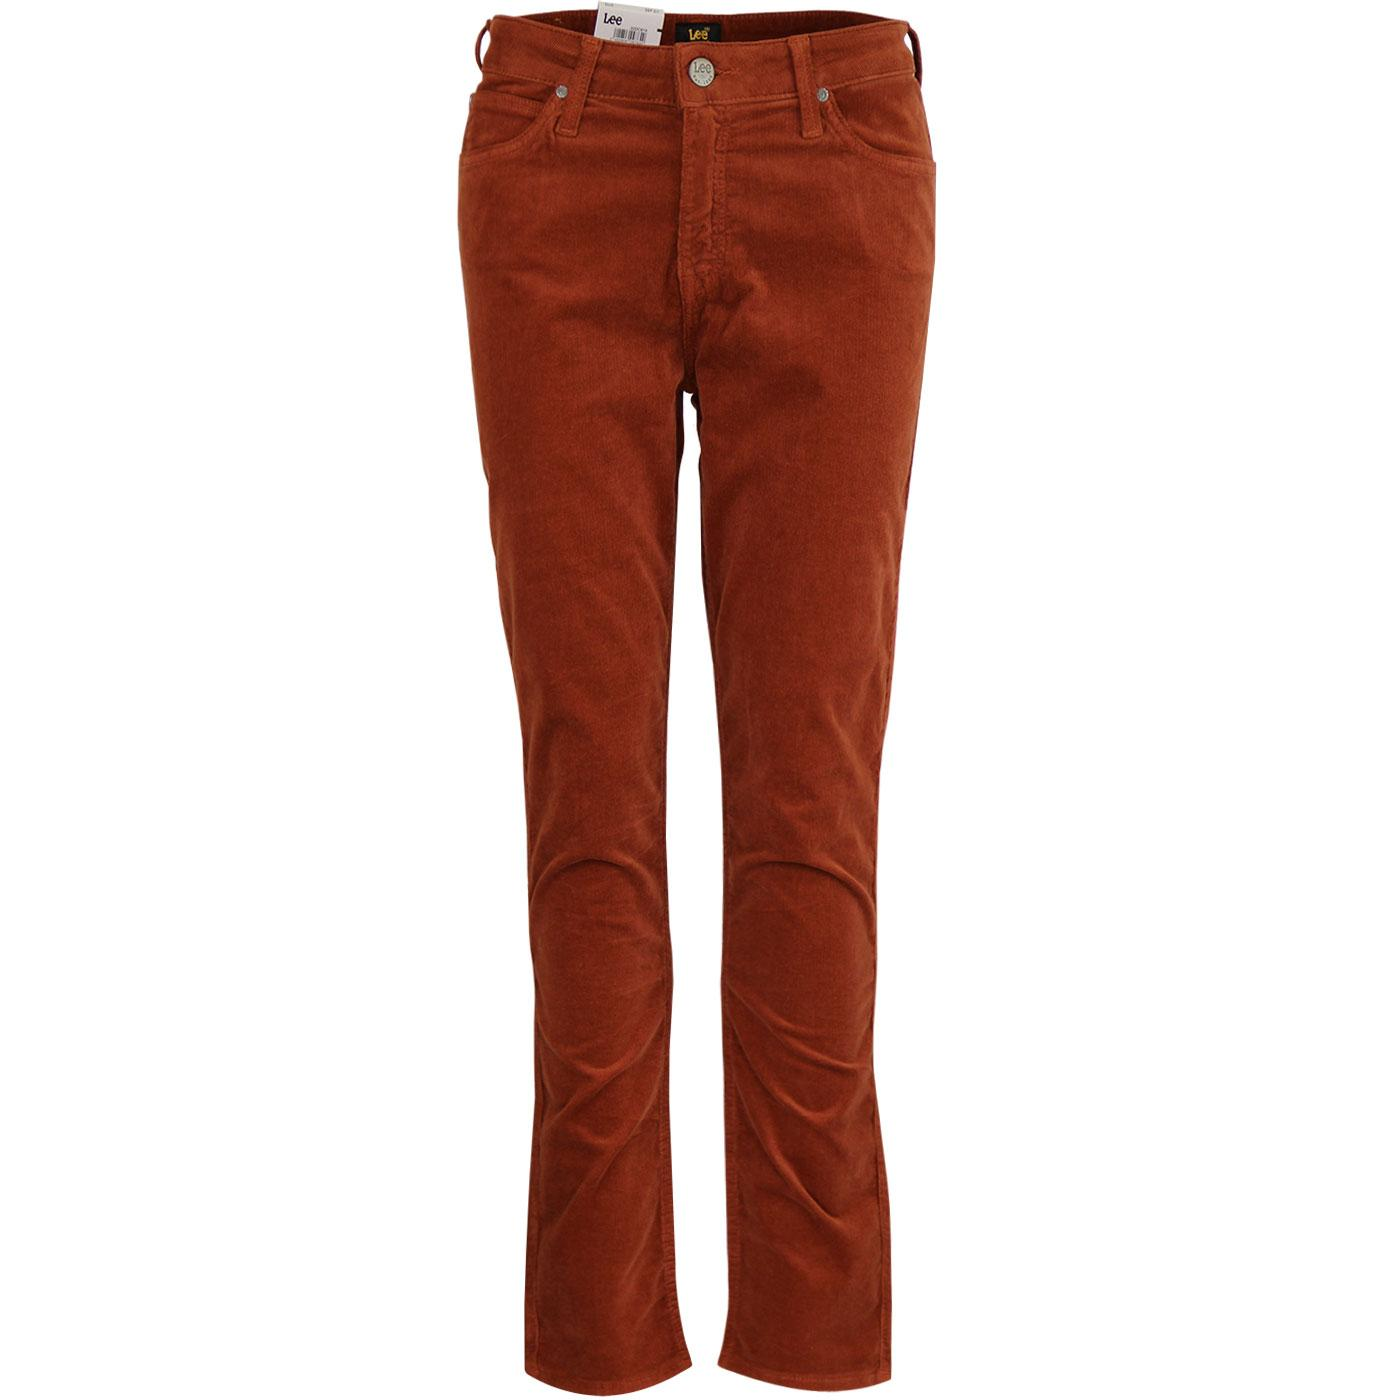 Elly LEE High Waist Slim Cord Trousers (Picante)